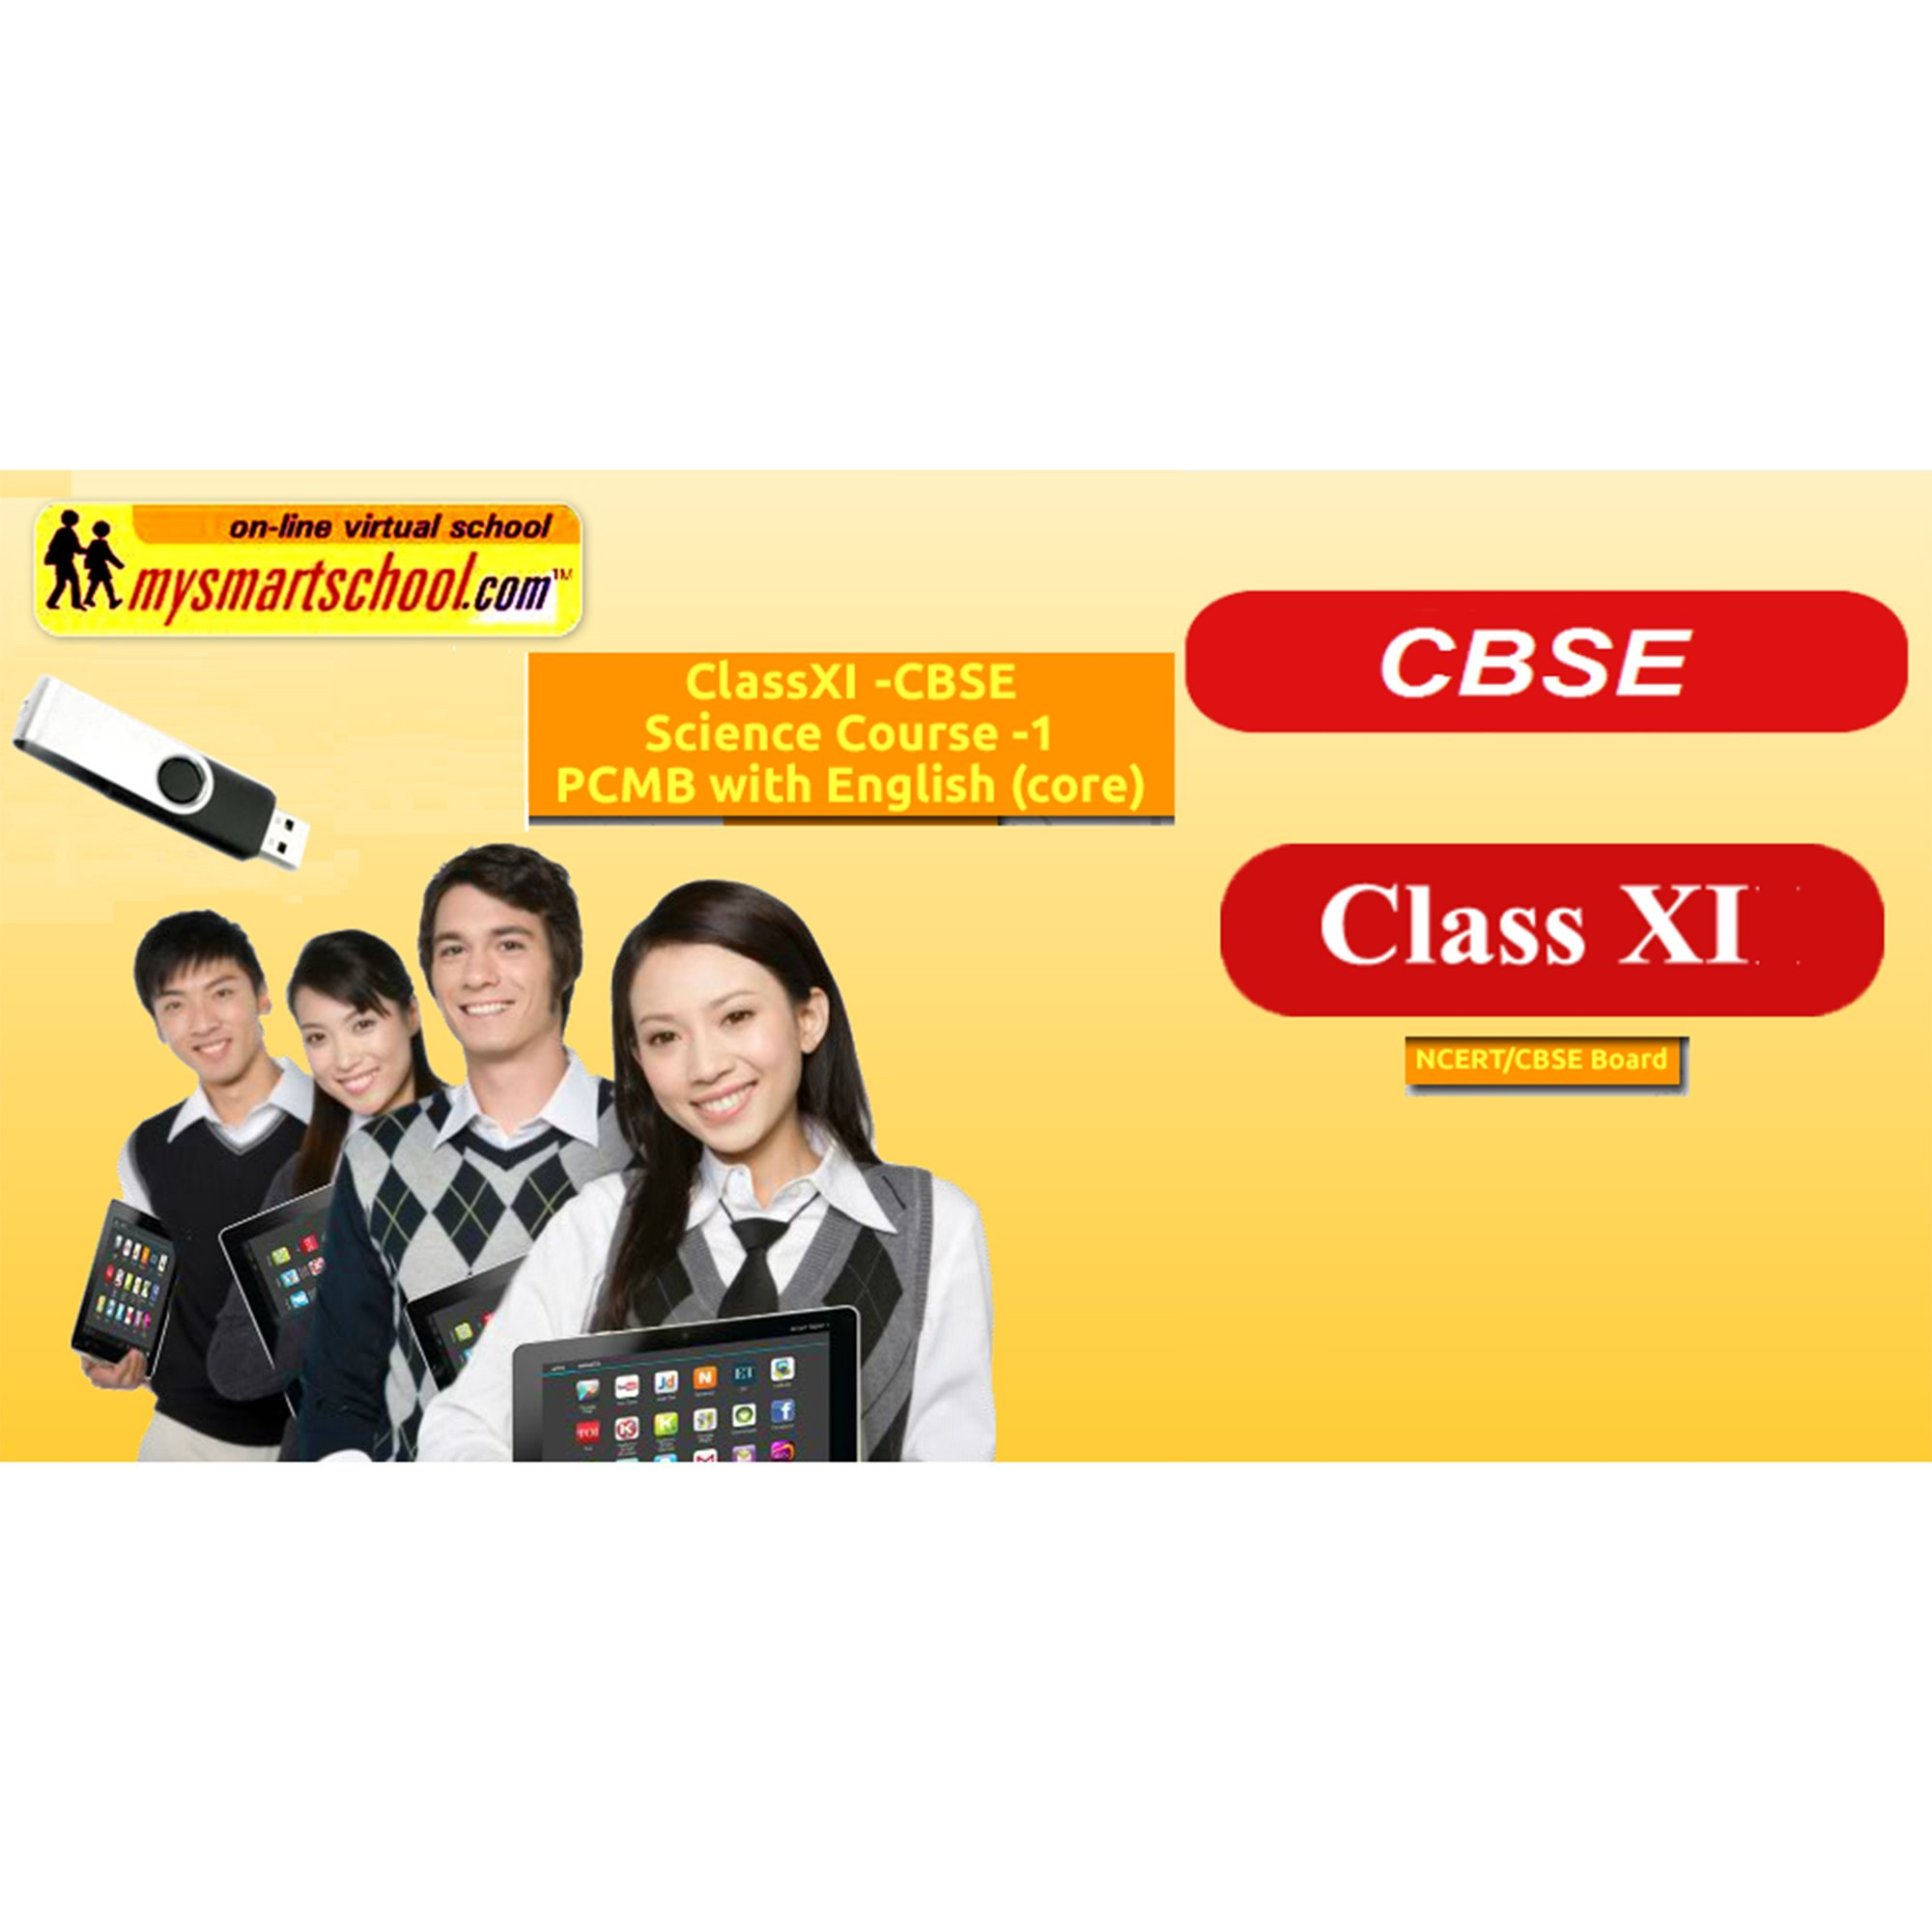 Class XI CBSE Science USB Pendrive Course (Physics Chemistry Maths Biology) with English (core) All/each Lessons are Interactive Multimedia with multiple Questions on the Basis of CBSE Evaluation by mysmartschool